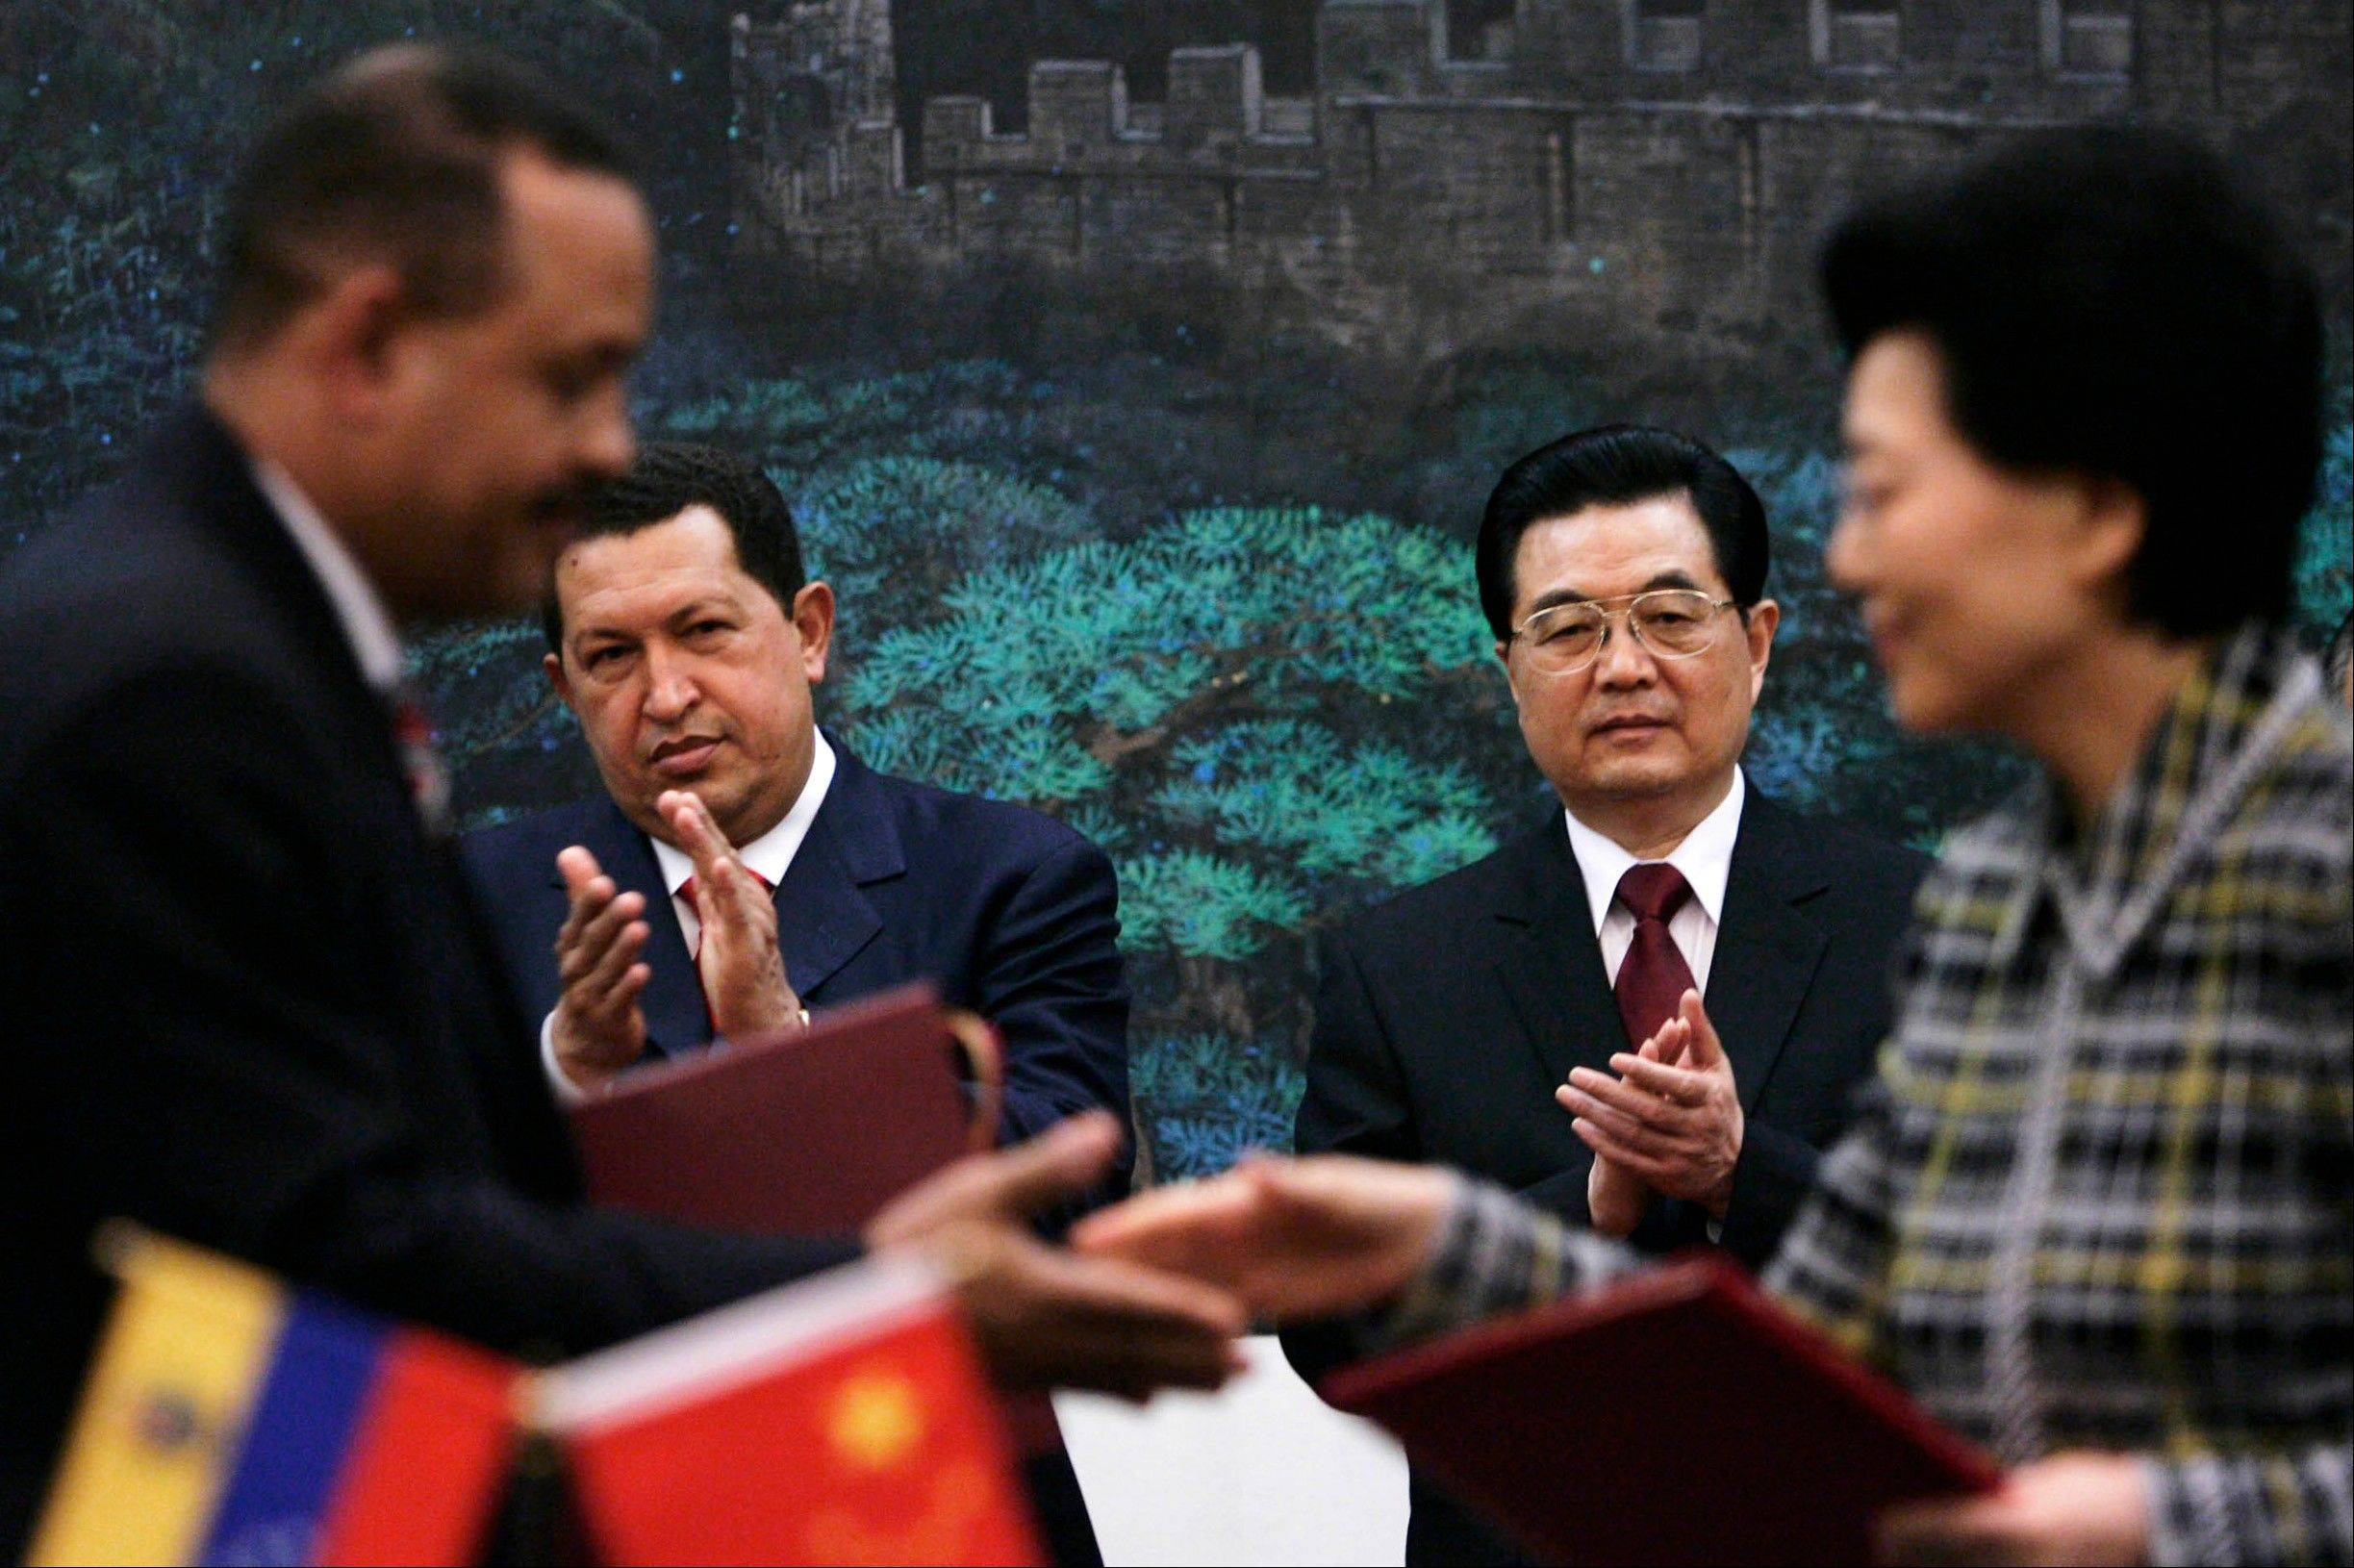 In this Sept. 24, 2008 file photo, Chinese President Hu Jintao, behind right, and Venezuela's President Hugo Chavez, behind left, applaud during an agreement signing ceremony at the Great Hall of the People in Beijing, China.